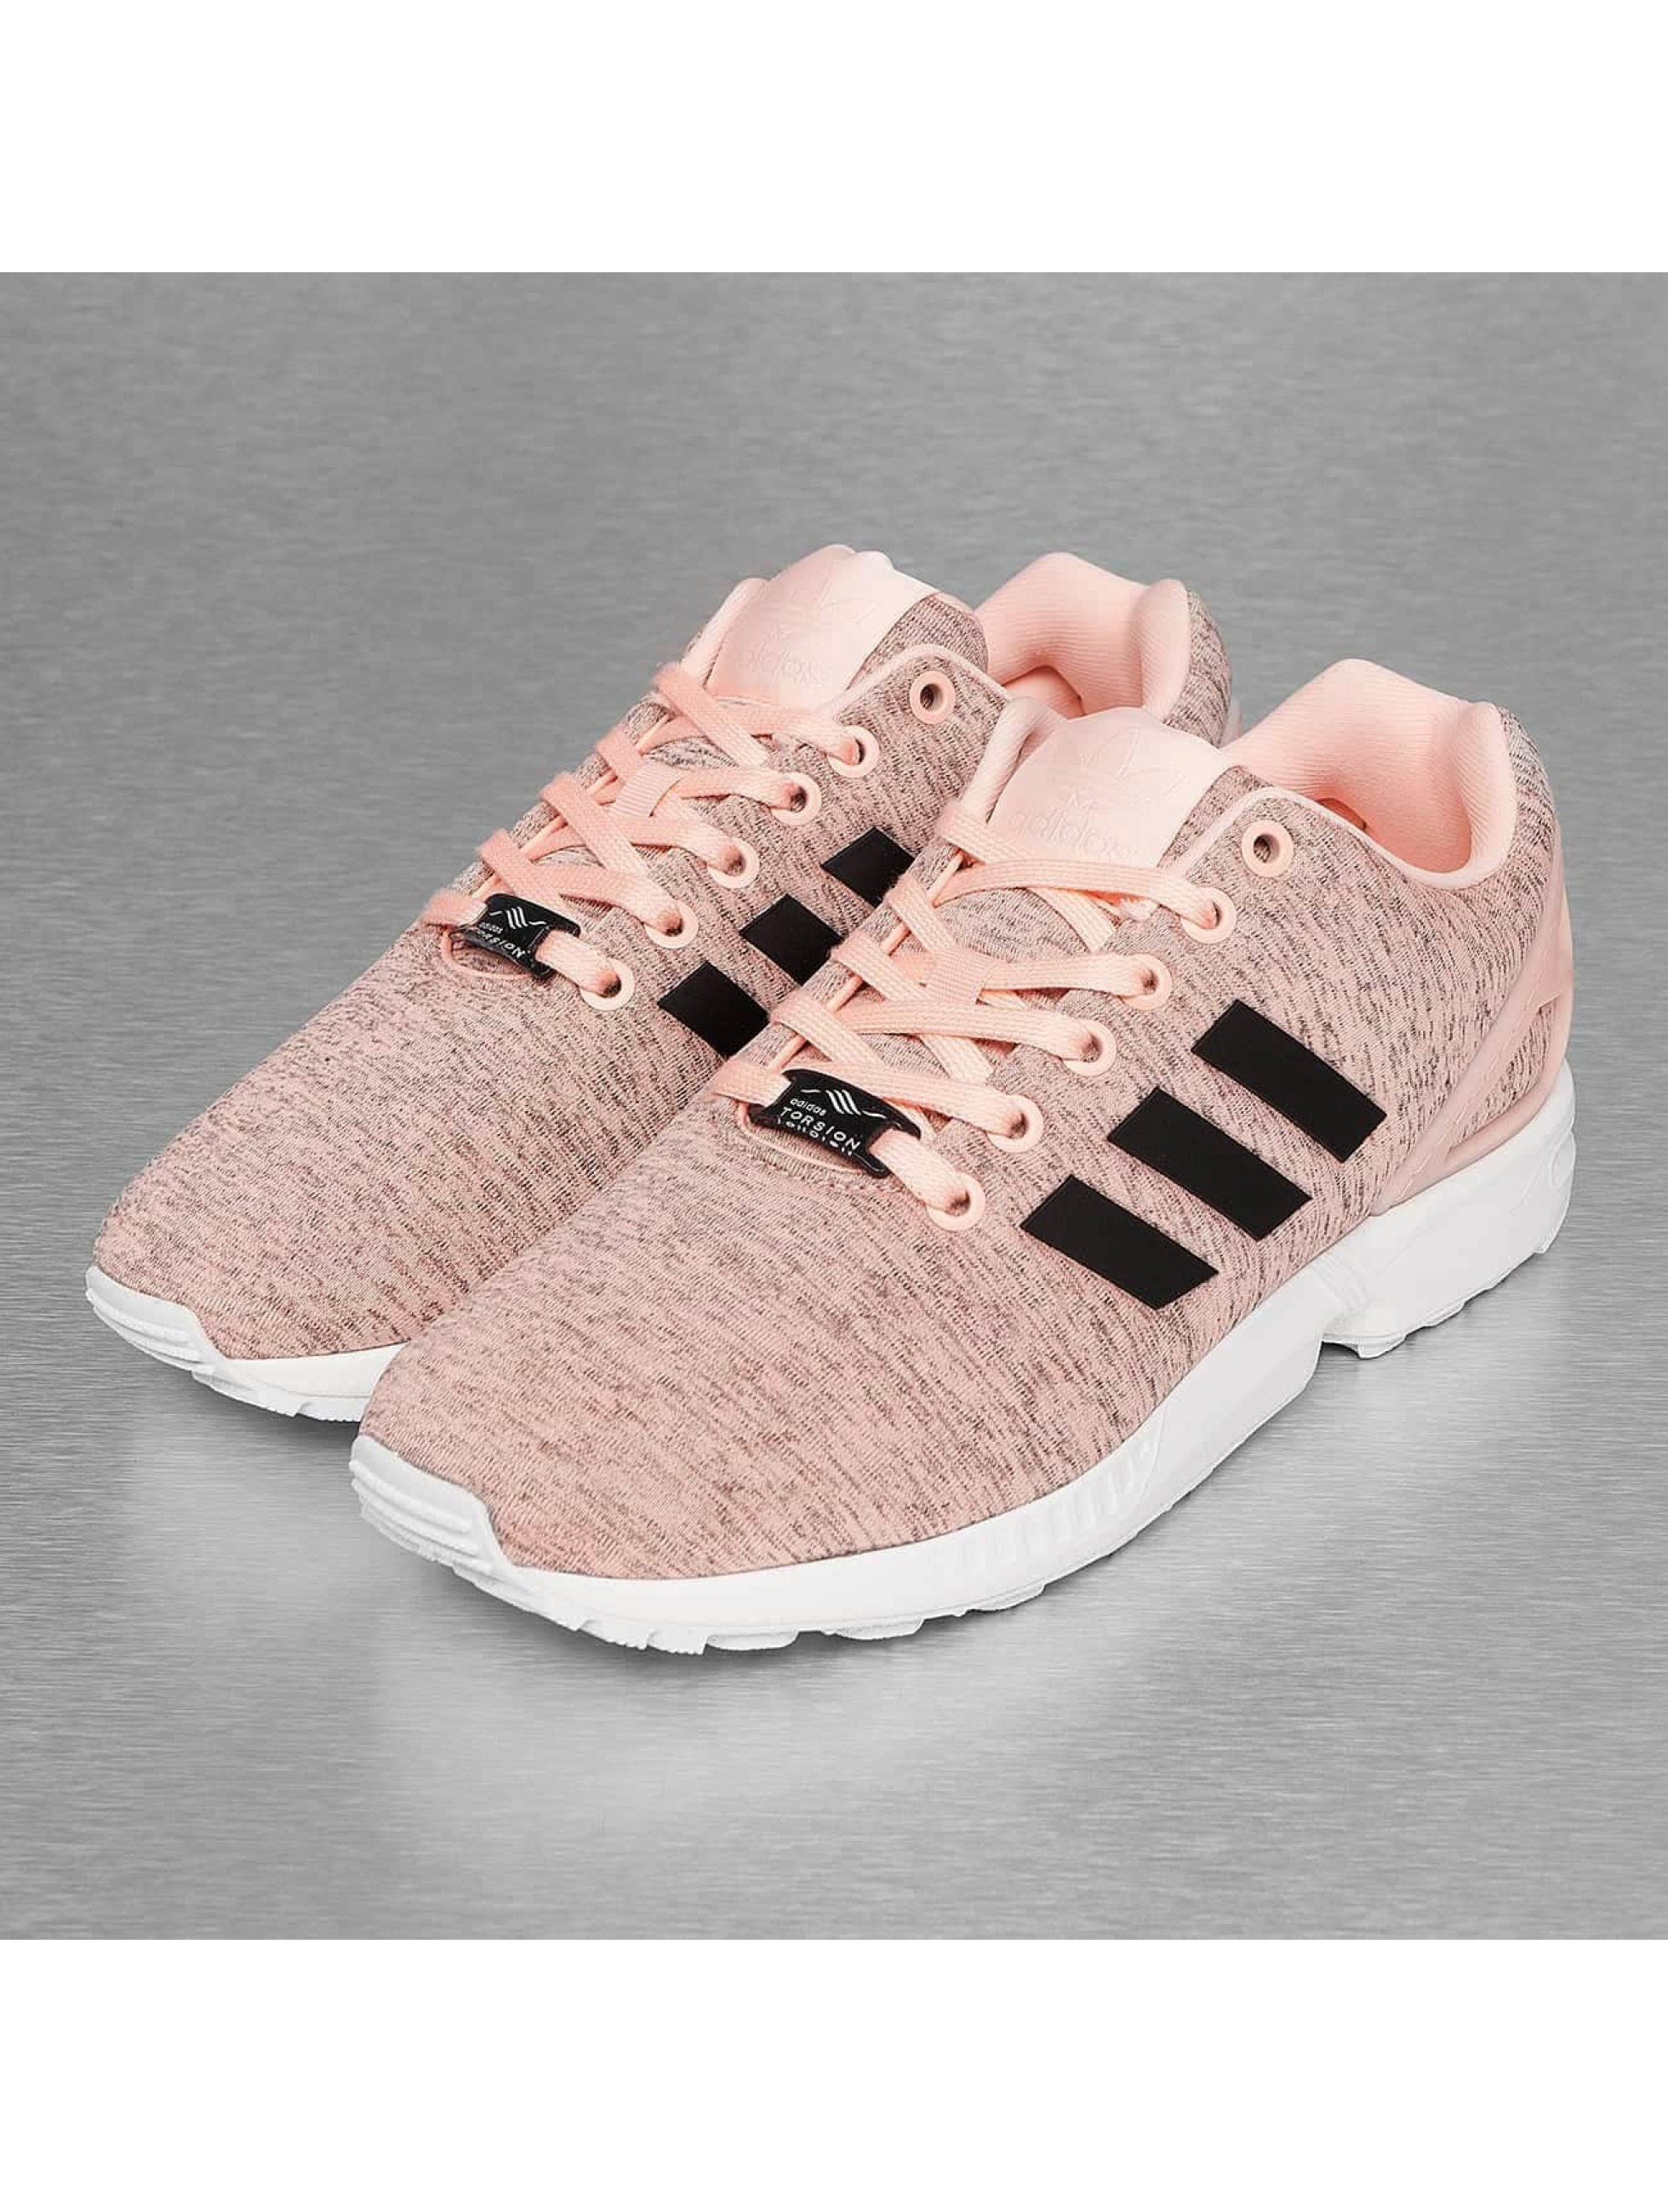 adidas sneaker zx flux w in rosa 302725. Black Bedroom Furniture Sets. Home Design Ideas